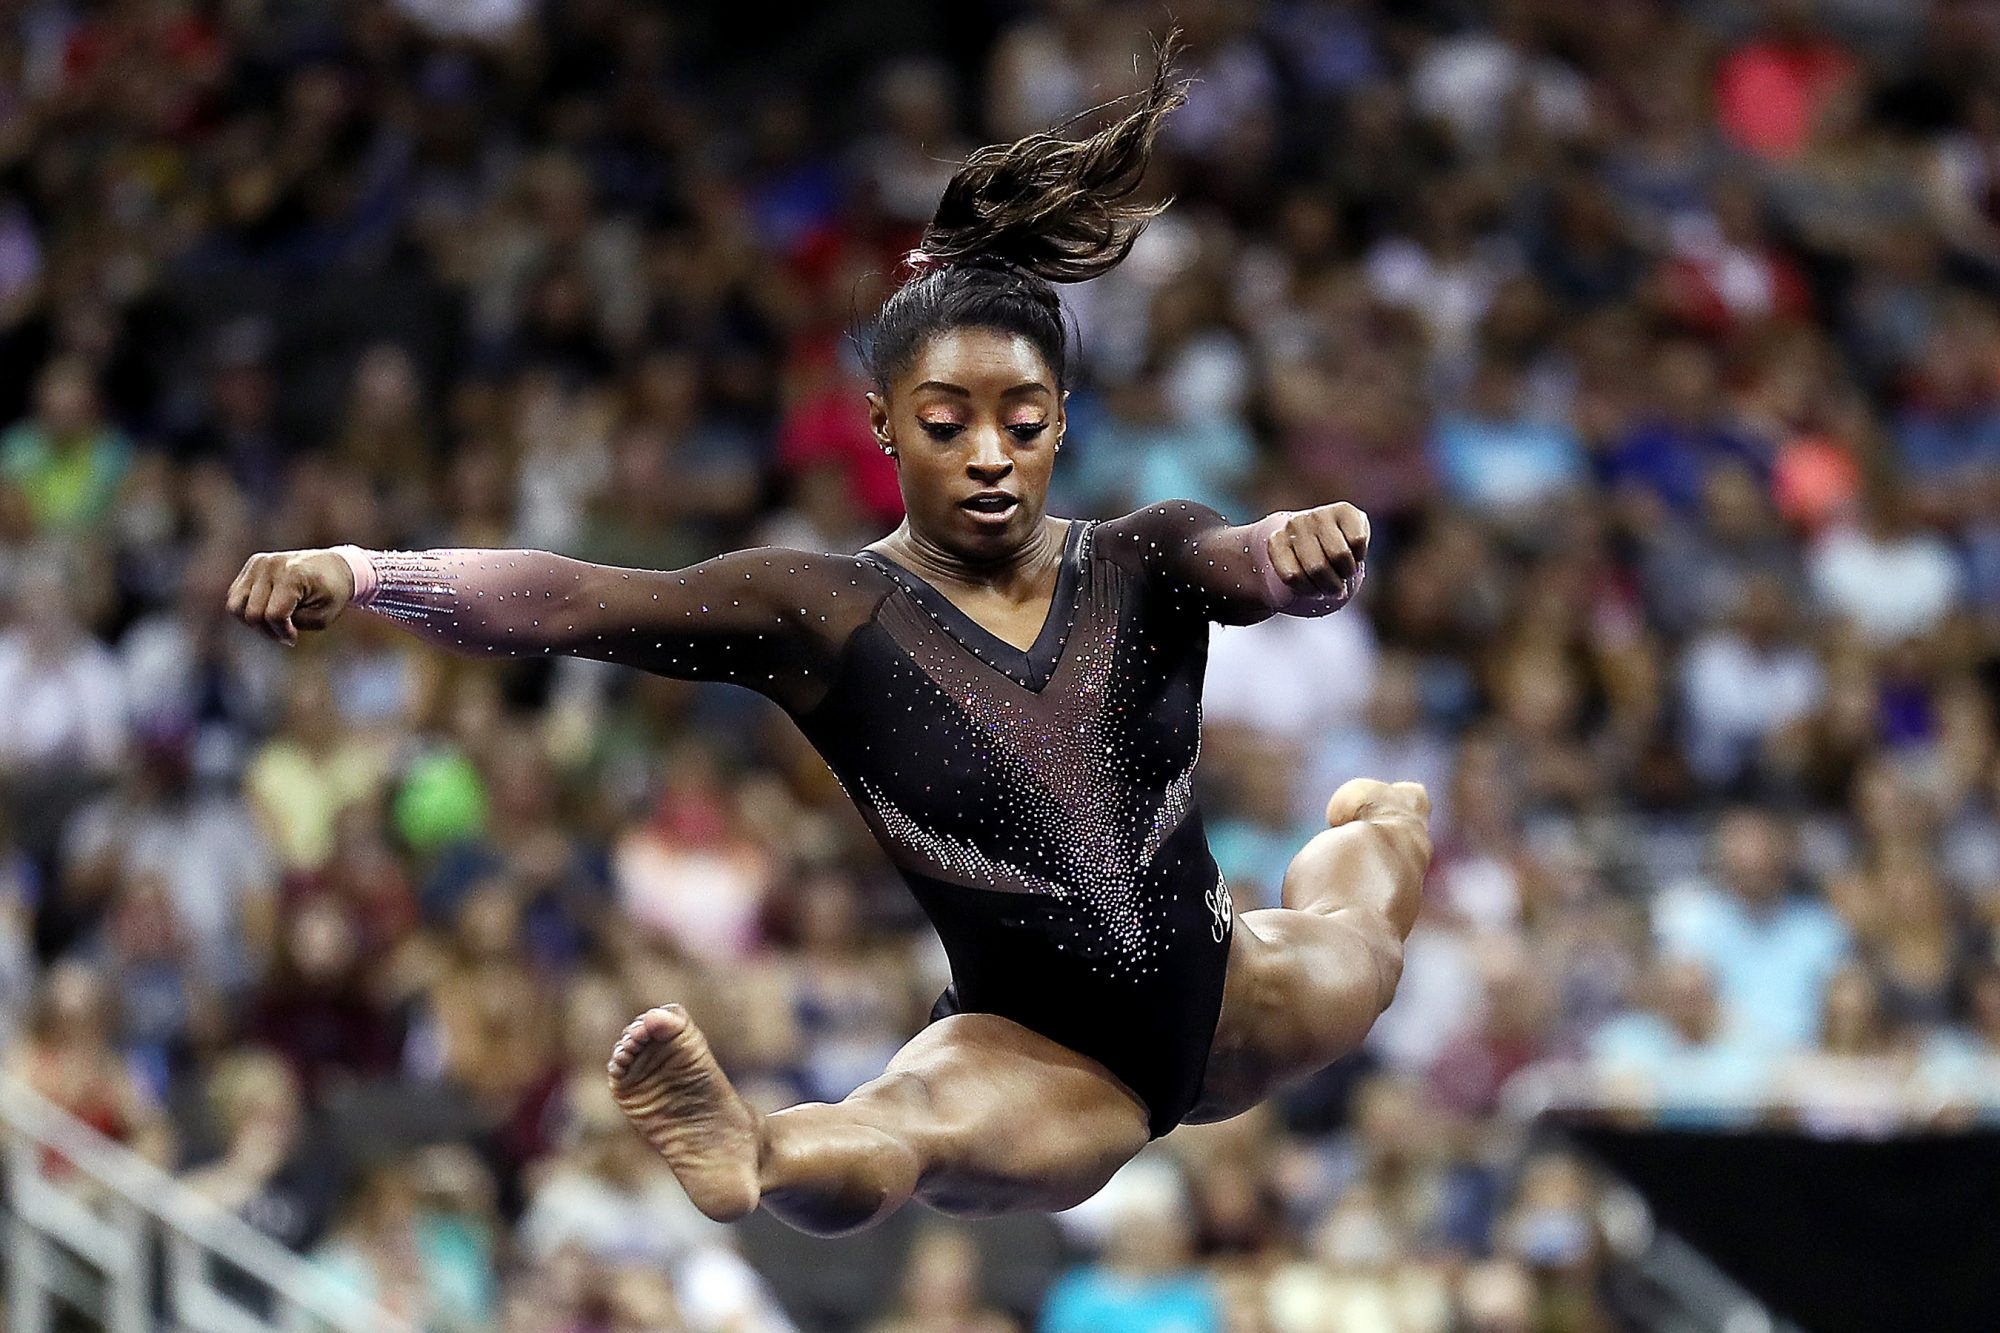 Simone Biles Lands Historic Triple-Double